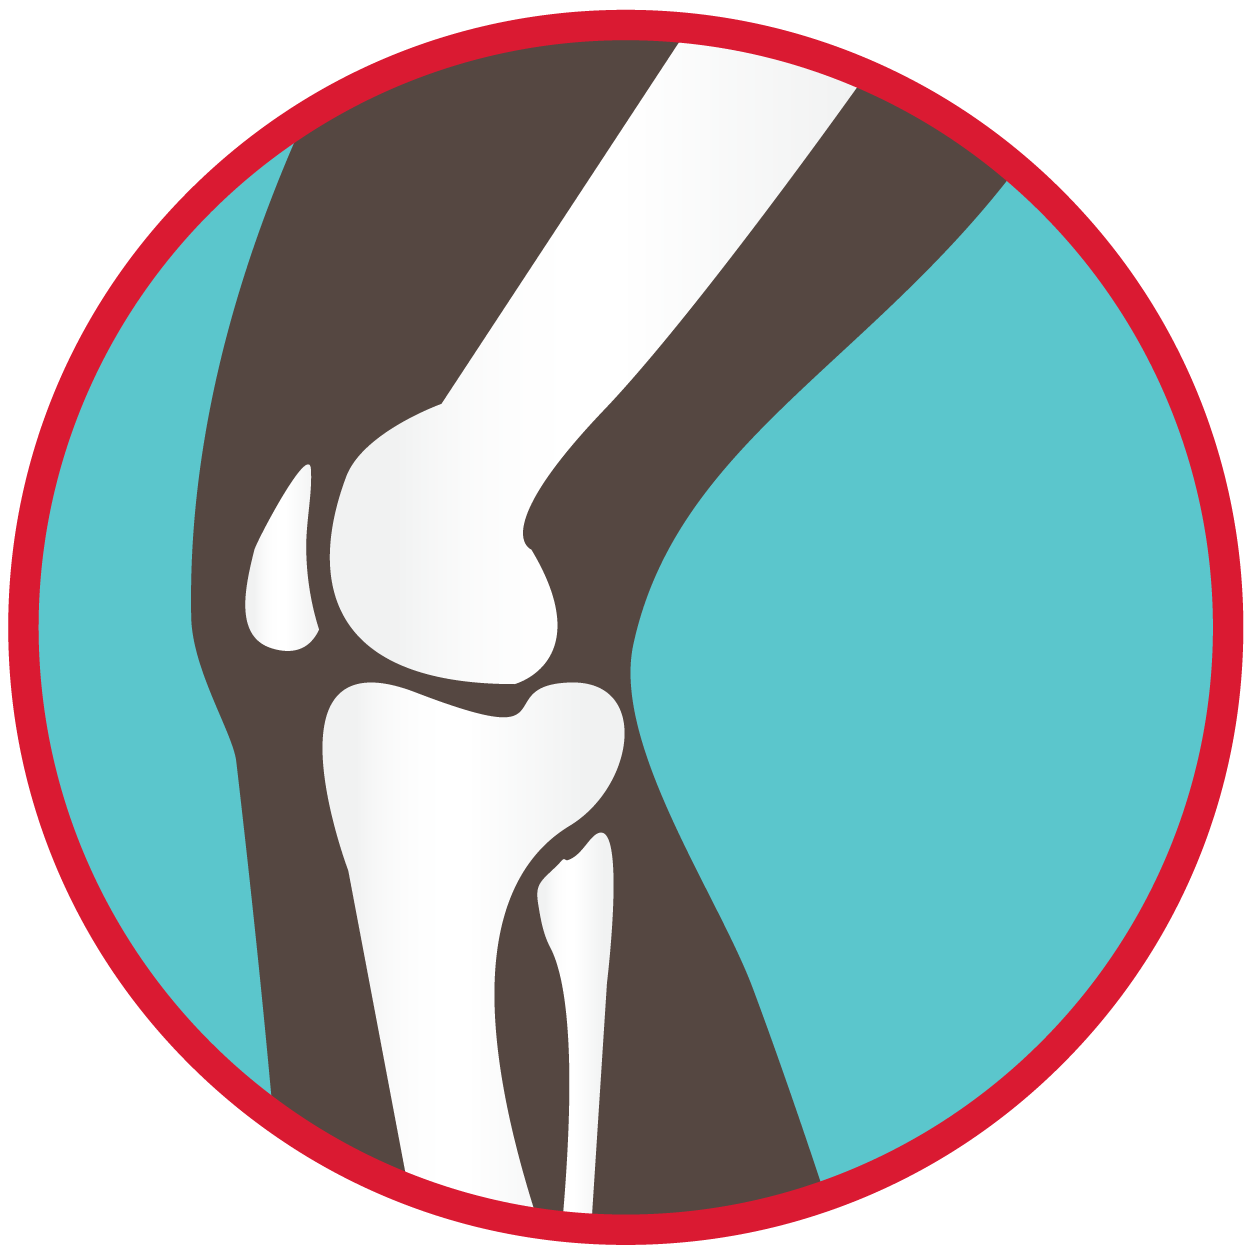 Knee clipart knee joint. Sports medicine products ankle